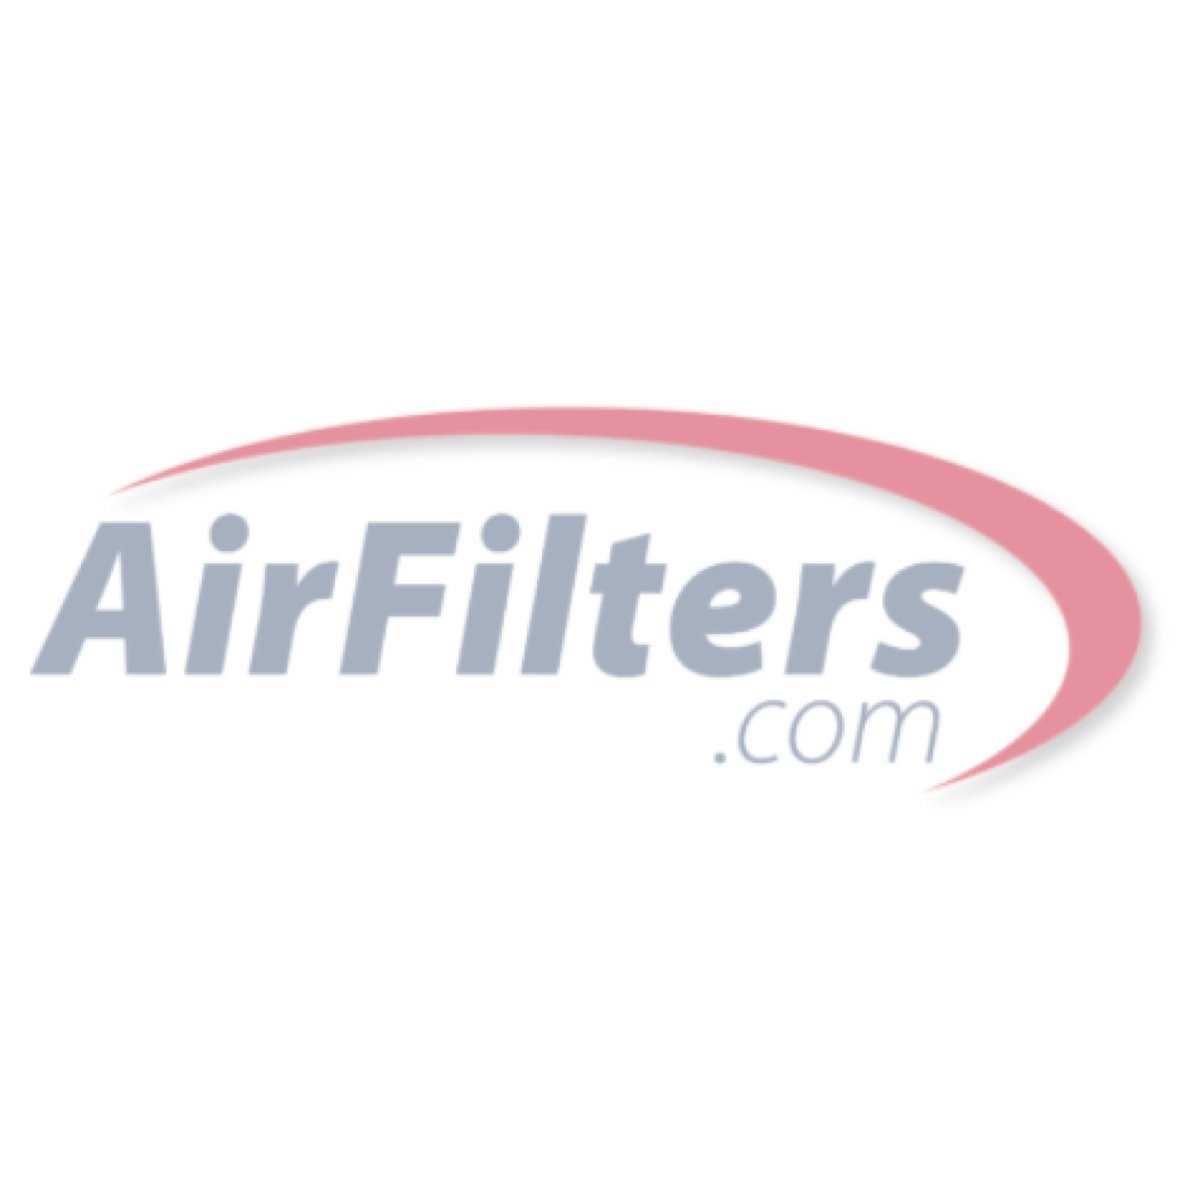 Aeriale® Air Filters by Accumulair®